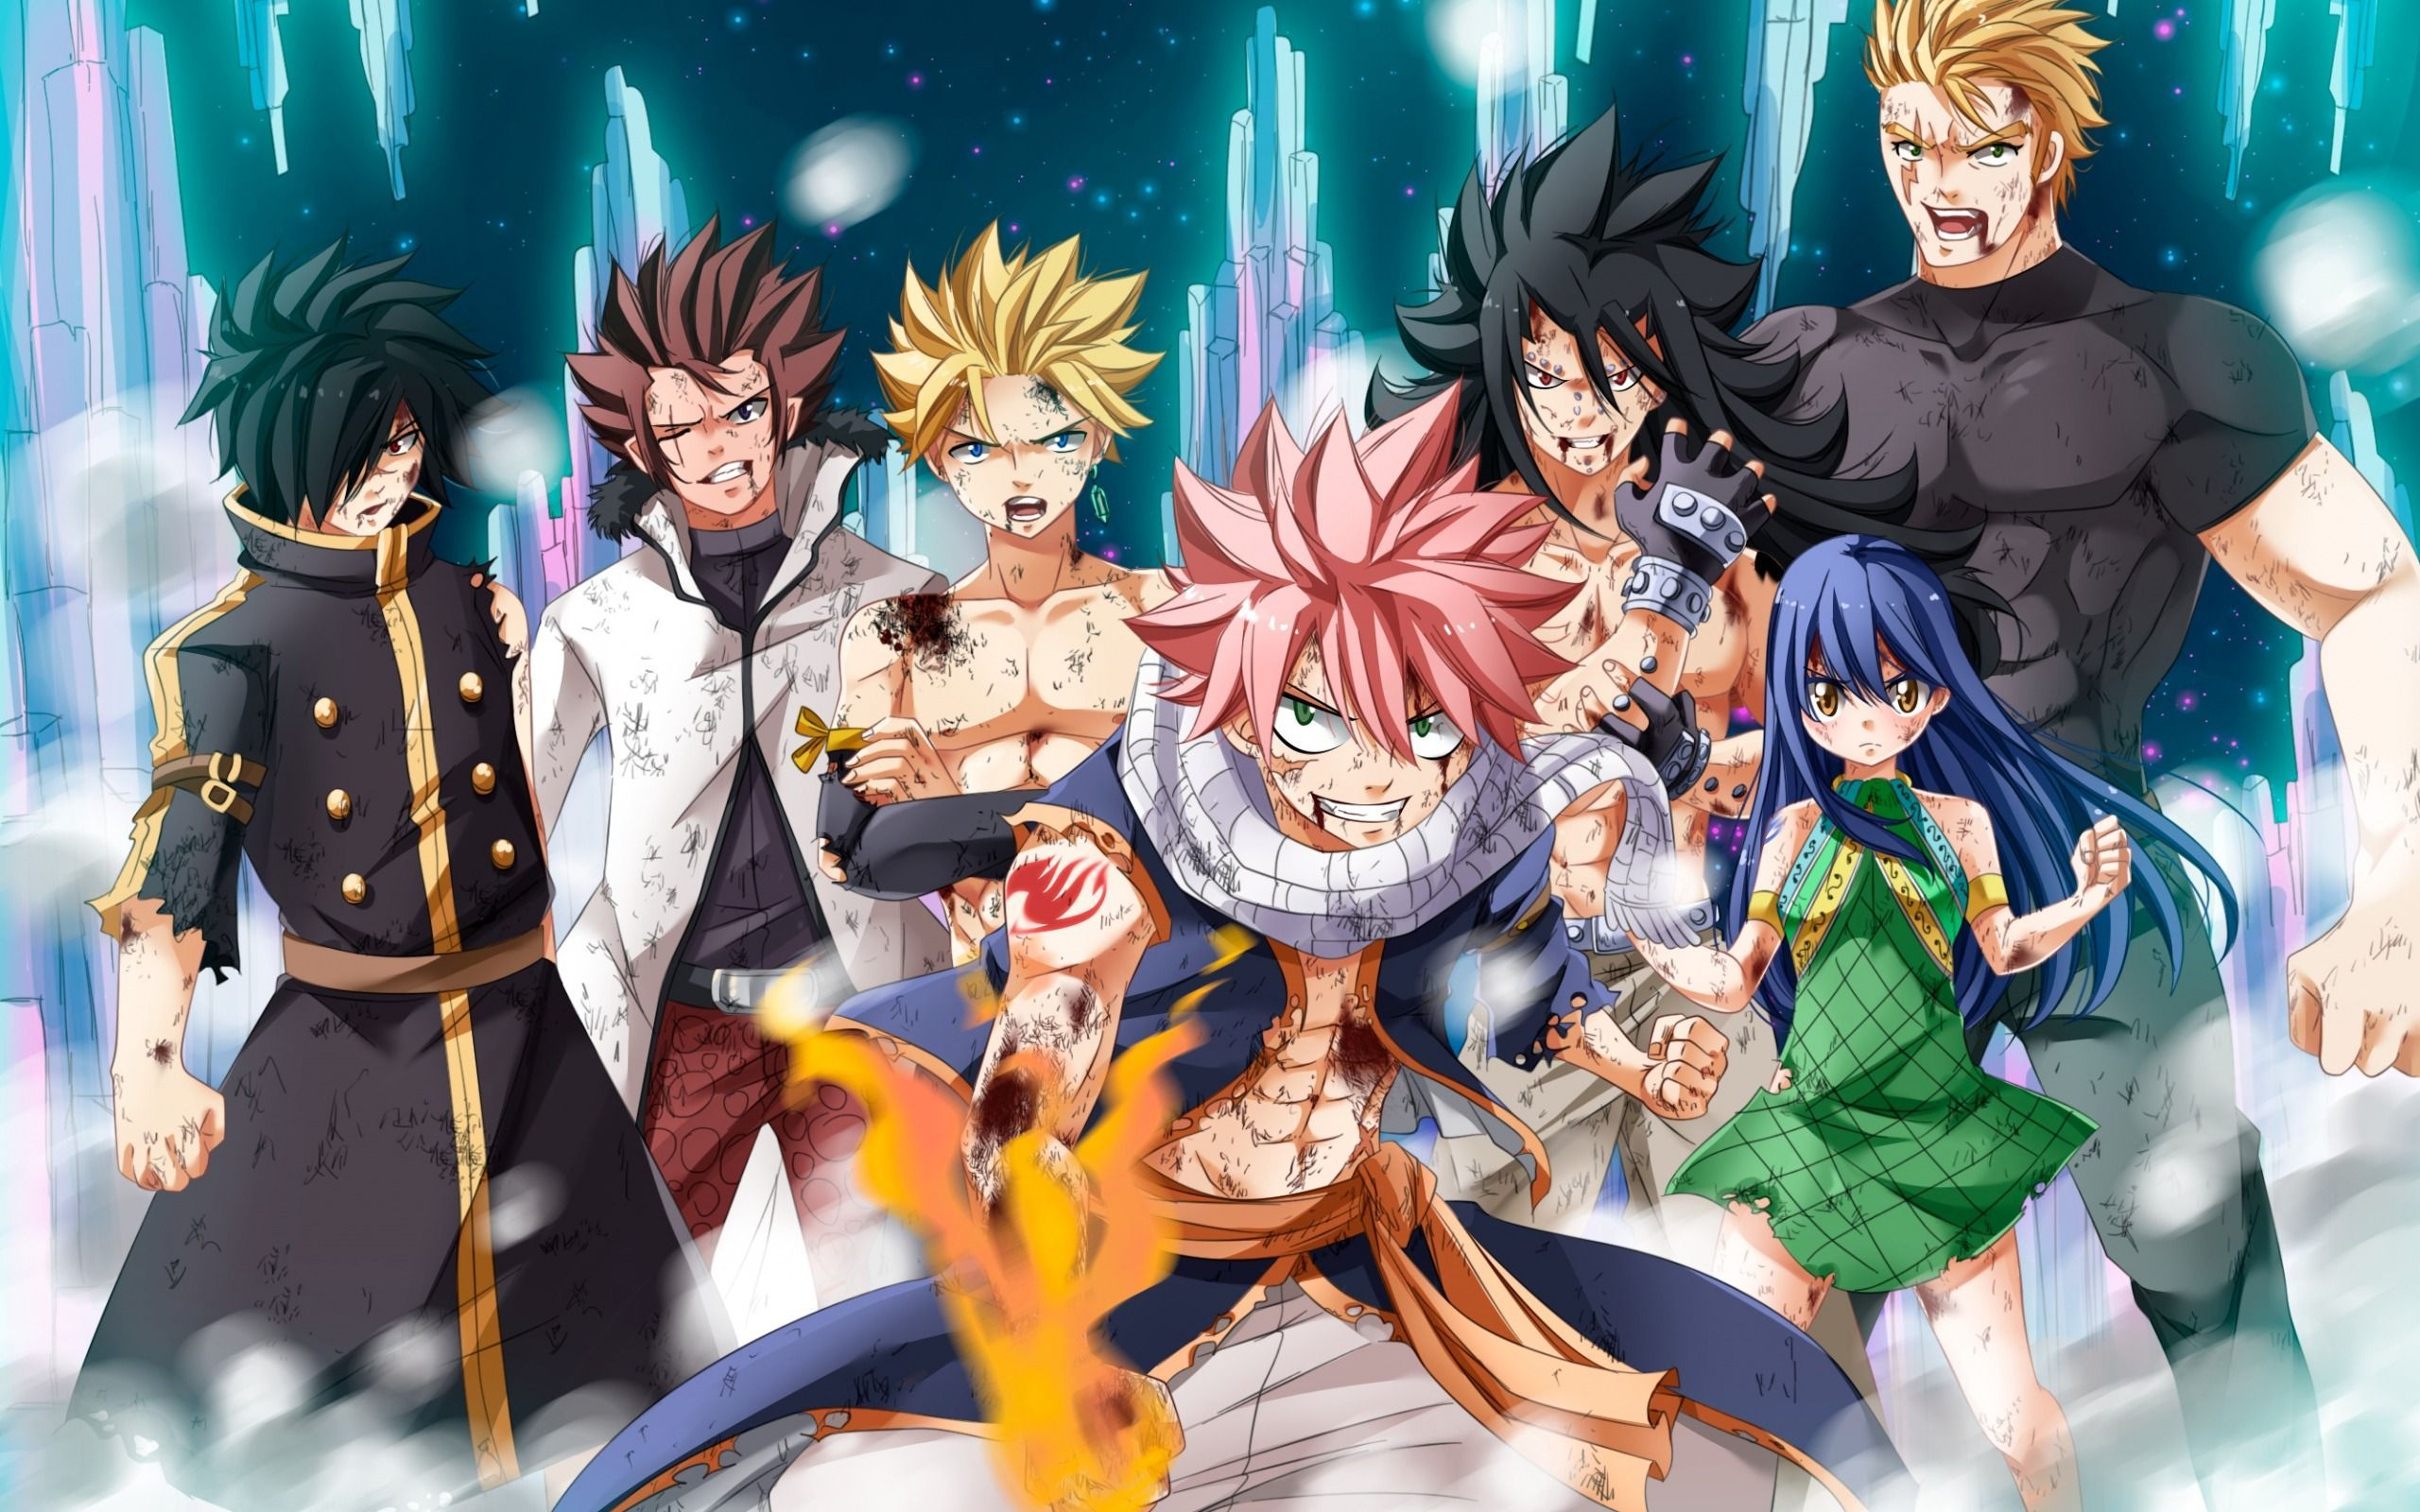 Download wallpapers Fairy Tail Japanese manga anime